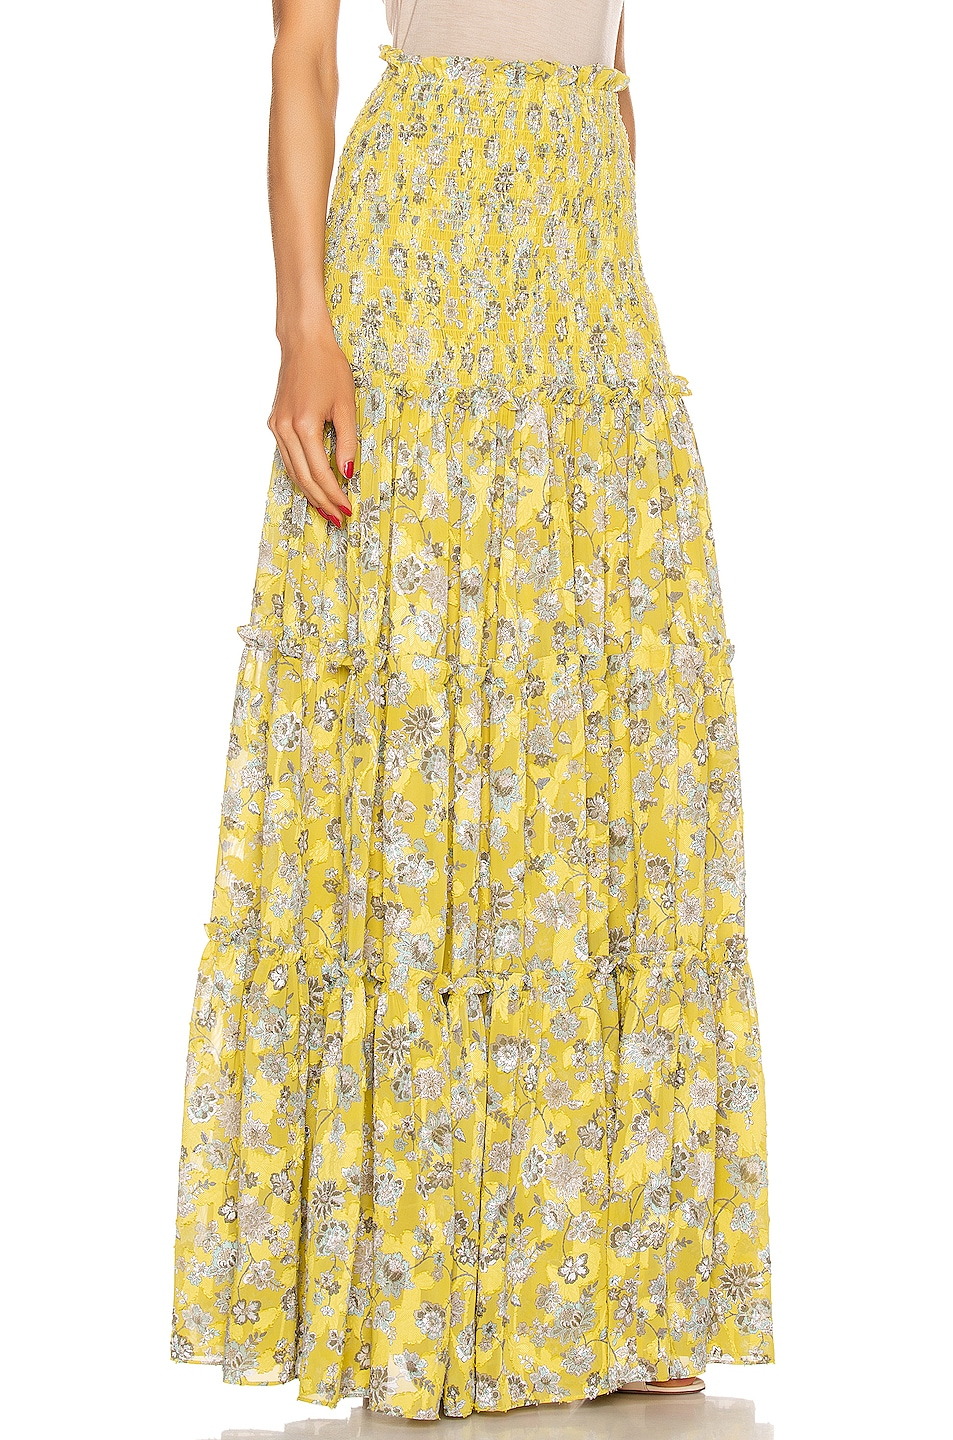 Image 2 of Alexis Galarza Skirt in Citron Floral